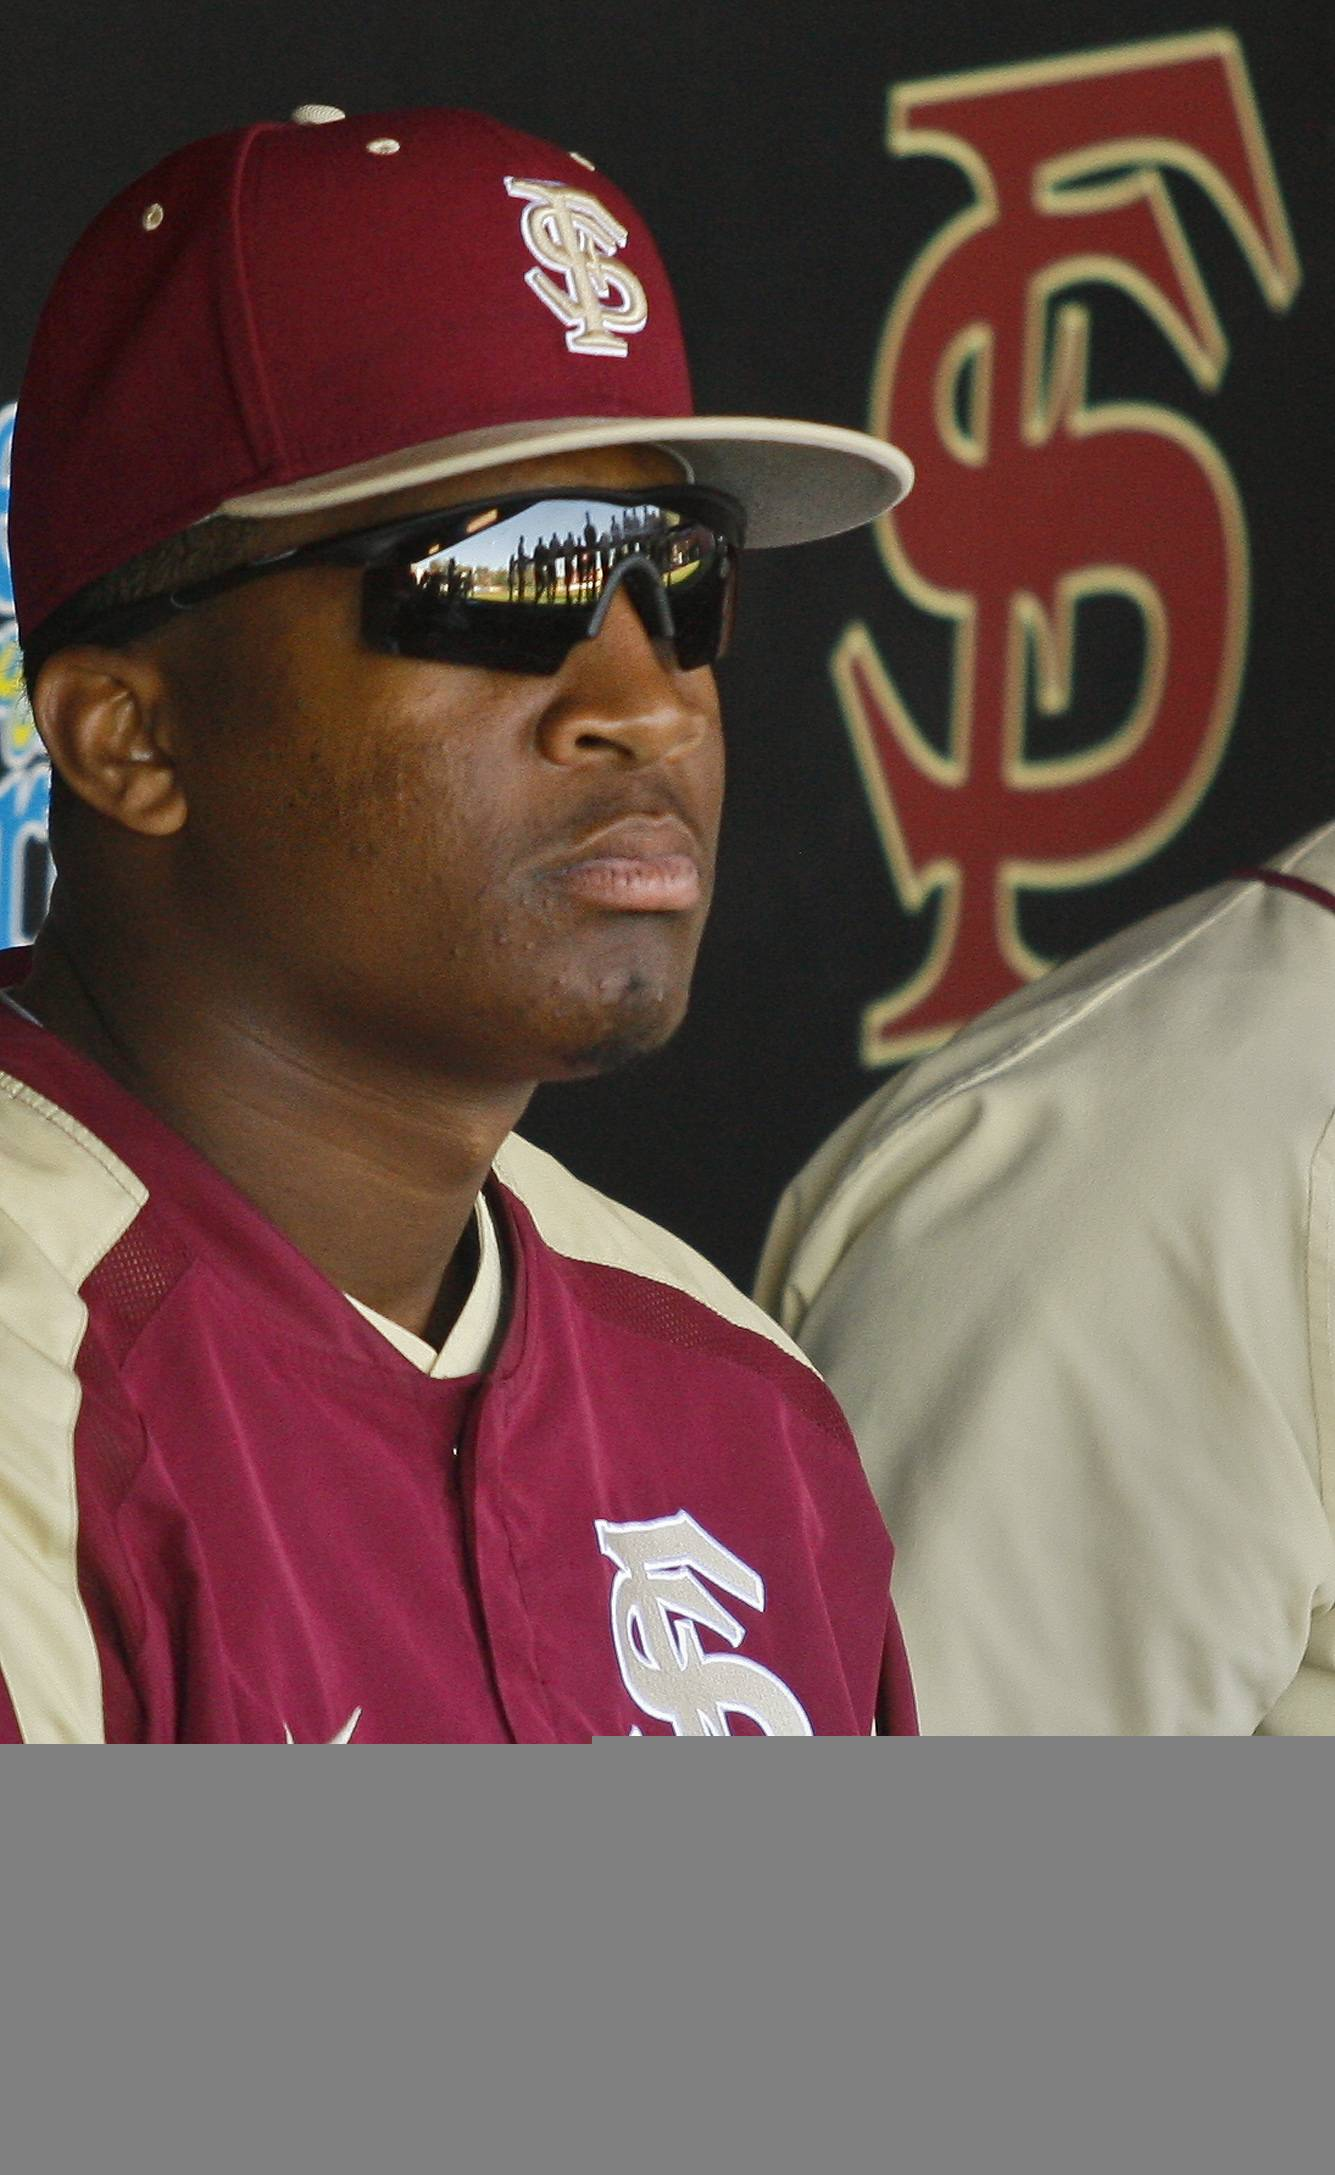 FILE - In this March 2, 2014, file photo, Florida State relief pitcher Jameis Winston sits in the dugout in the sixth inning of an NCAA college baseball game against Miami in Tallahassee, Fla. The Florida State baseball team has indefinitely suspended Heisman Trophy winner Jameis Winston, who is a relief pitcher for the Seminoles. Baseball coach Mike Martin said in a statement Wednesday, April 30, 2014, that Winston was issued a citation the night before, but he did not give specifics. The Leon County Sheriff's Office has declined comment. (AP Photo/Phil Sears, File)